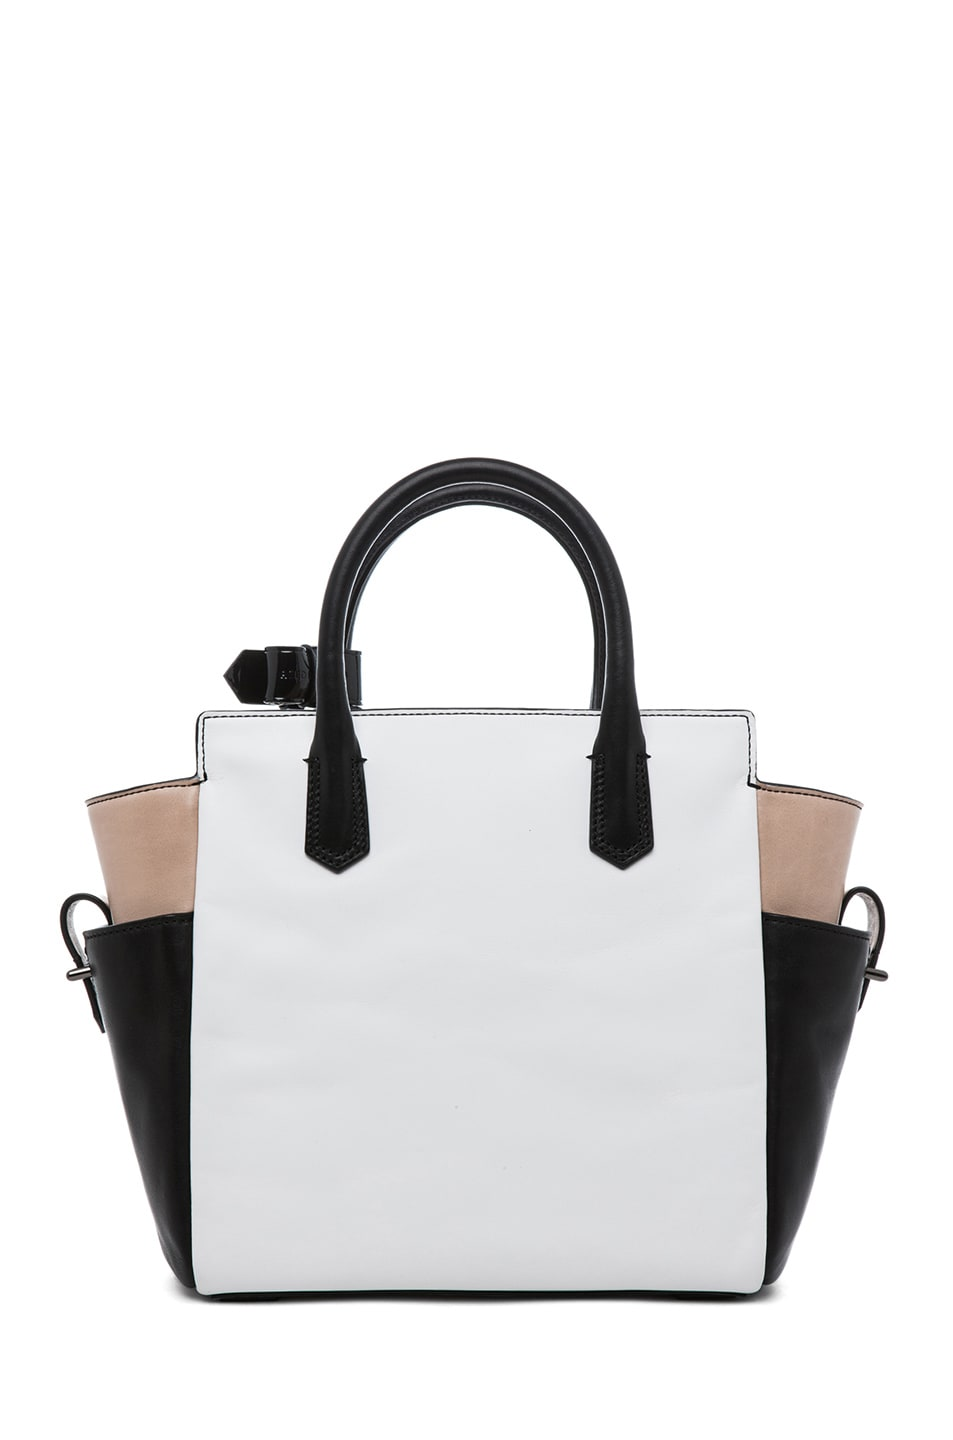 Image 2 of Reed Krakoff Patent Mini Atlantique in Nude Black